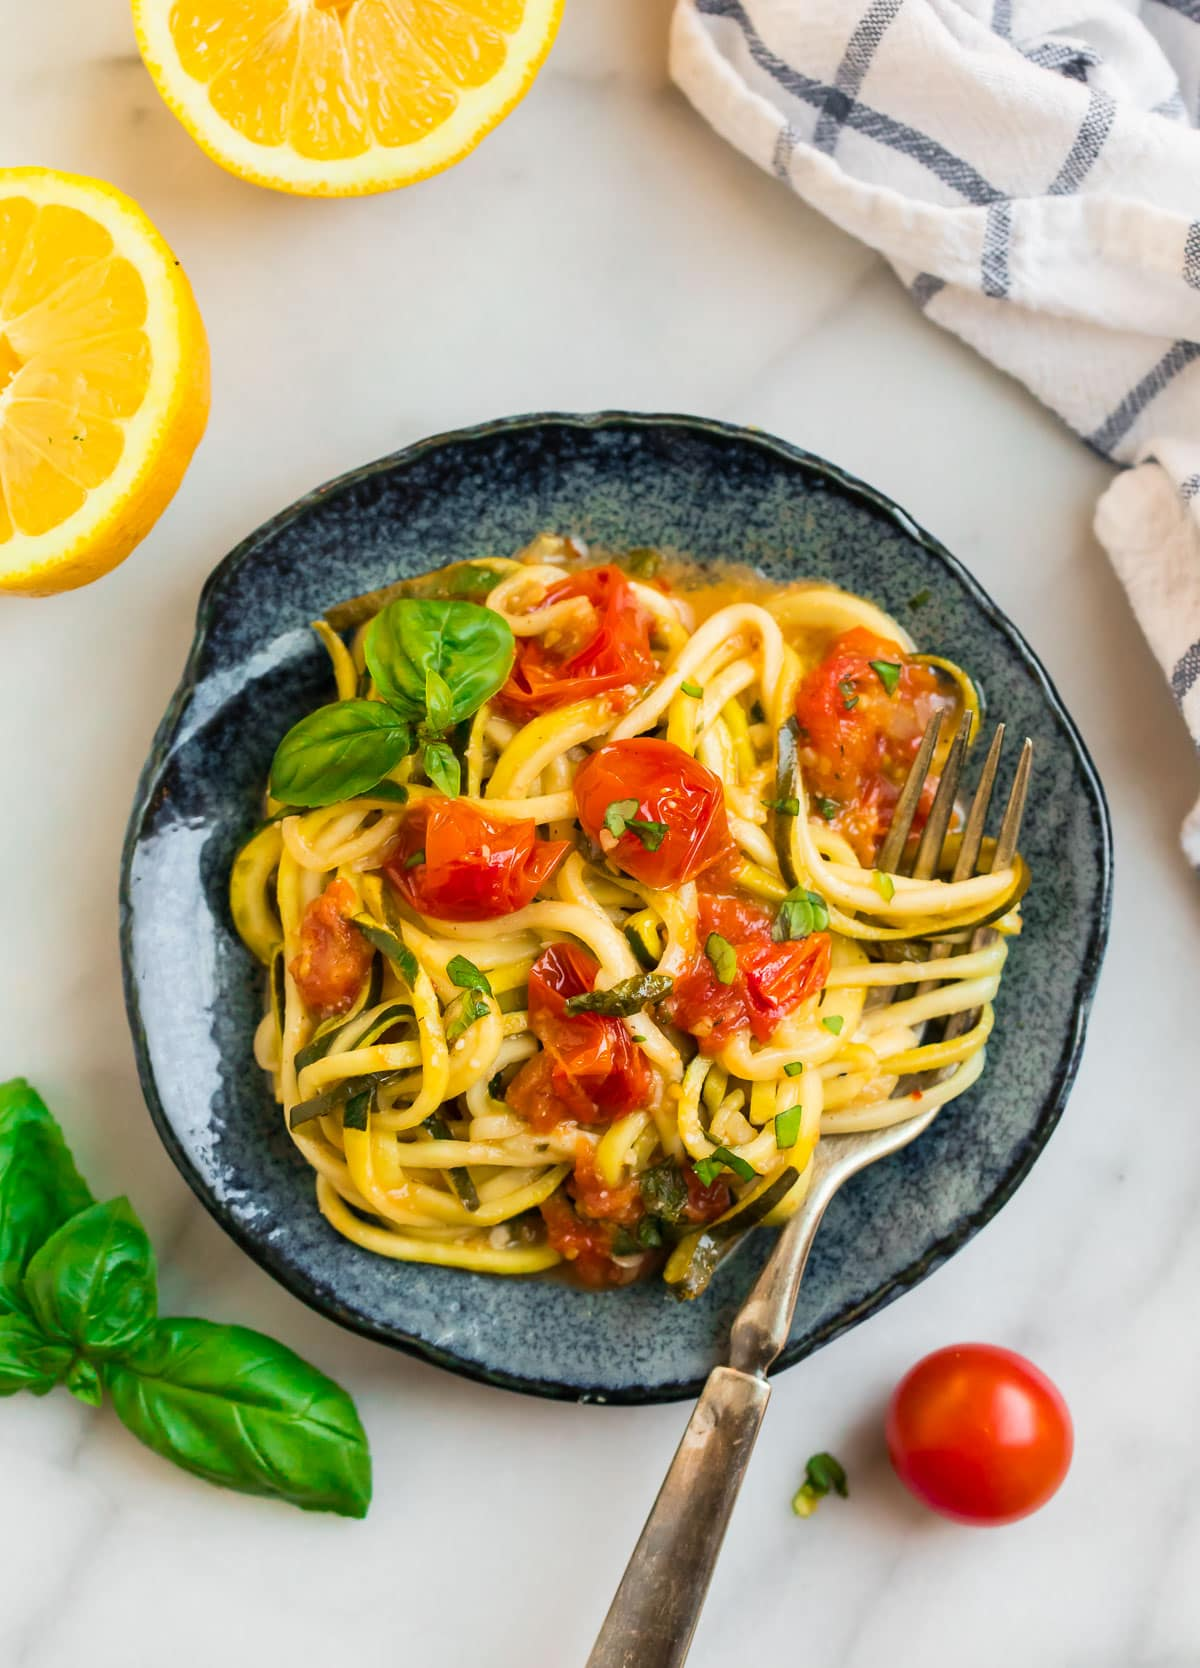 Easy zucchini pasta with tomatoes, basil, and lemon